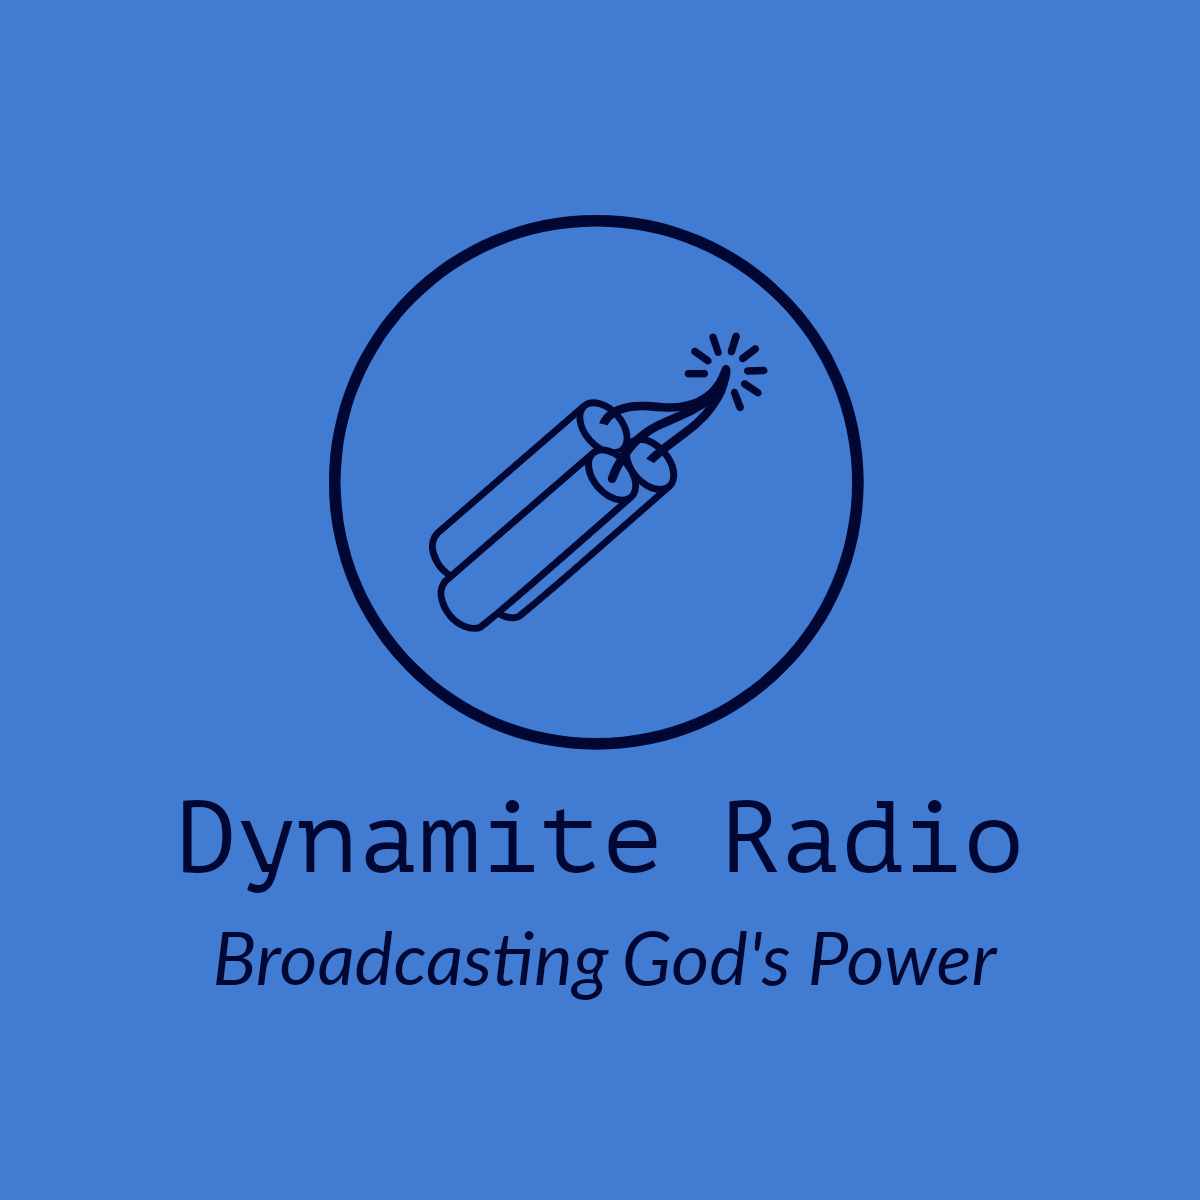 Art for Dynamiteradio.live by Broadcasting the Power of God